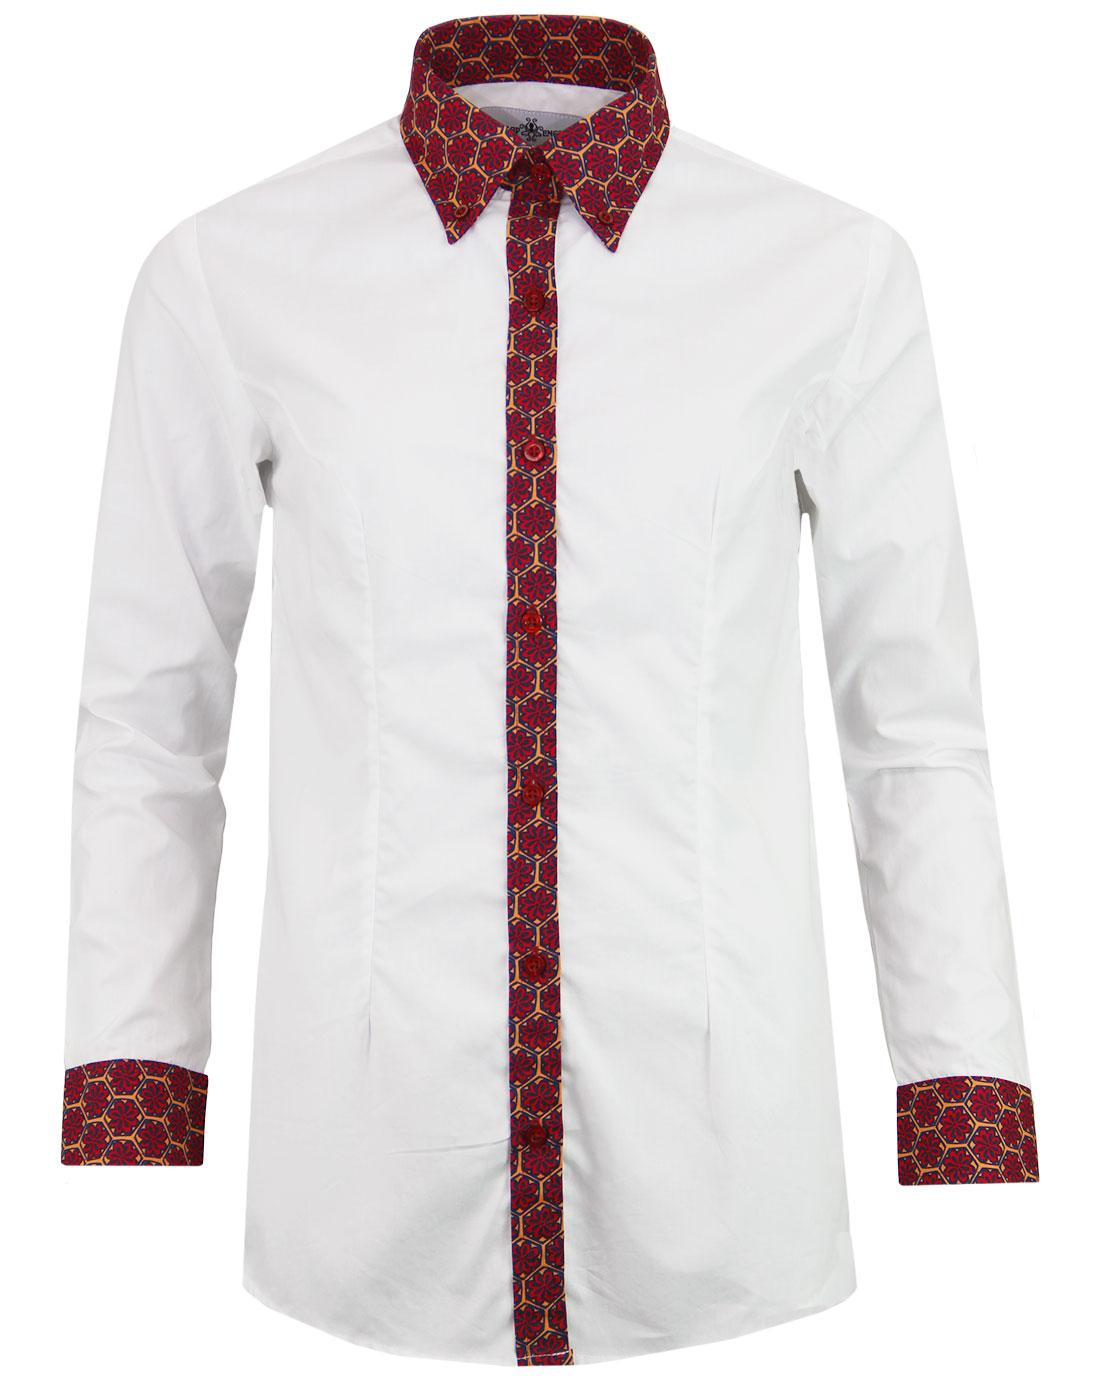 madcap england juniper mod floral trim shirt red